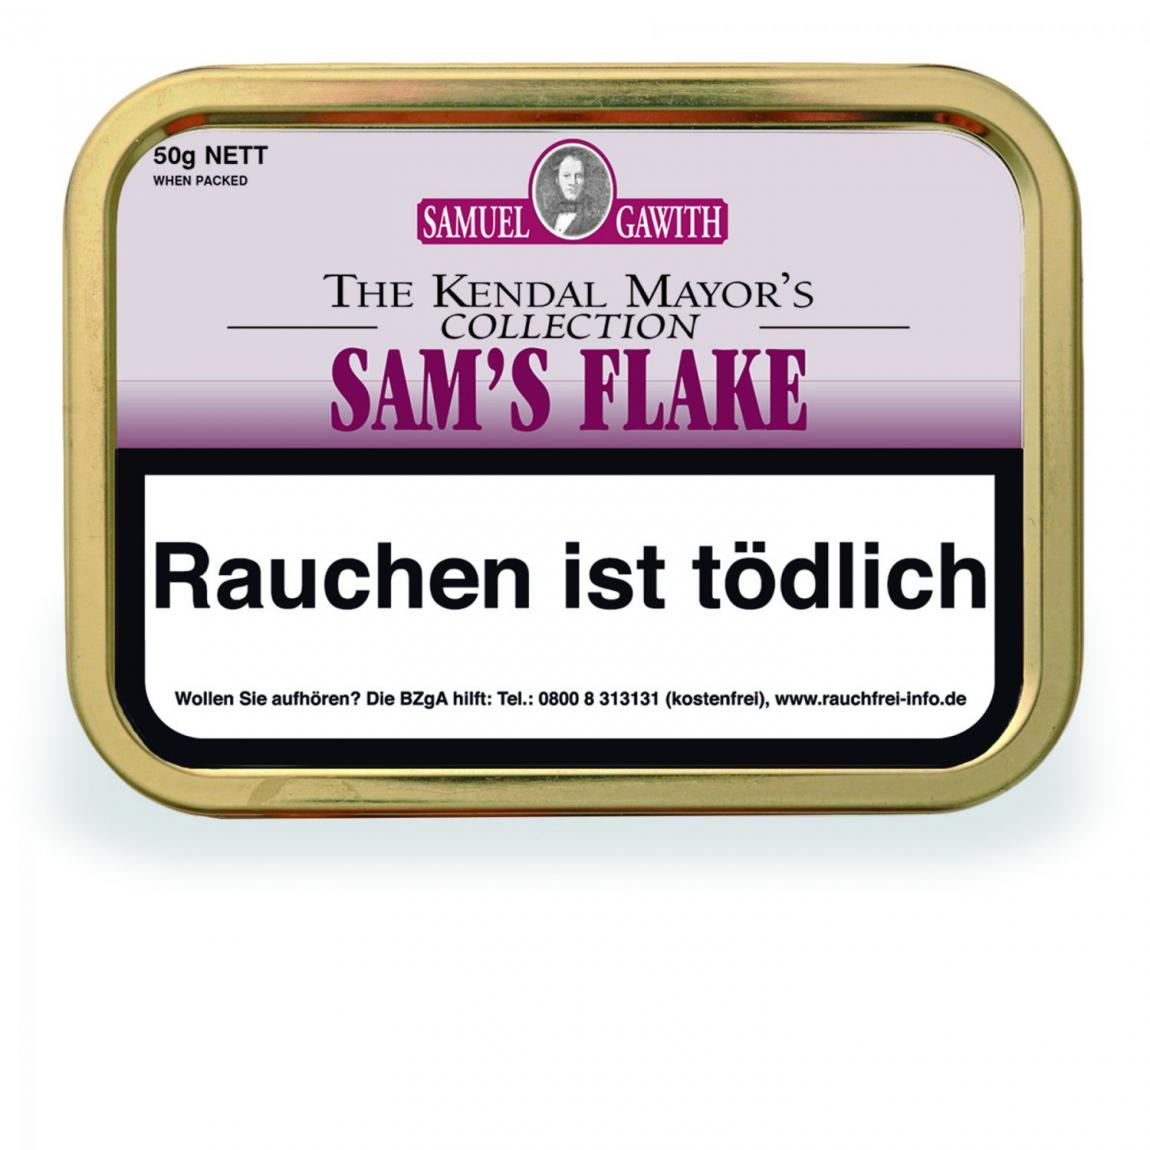 Samuel Gawith The Kendal Mayor's Collection »Sam's Flake« 50g Dose